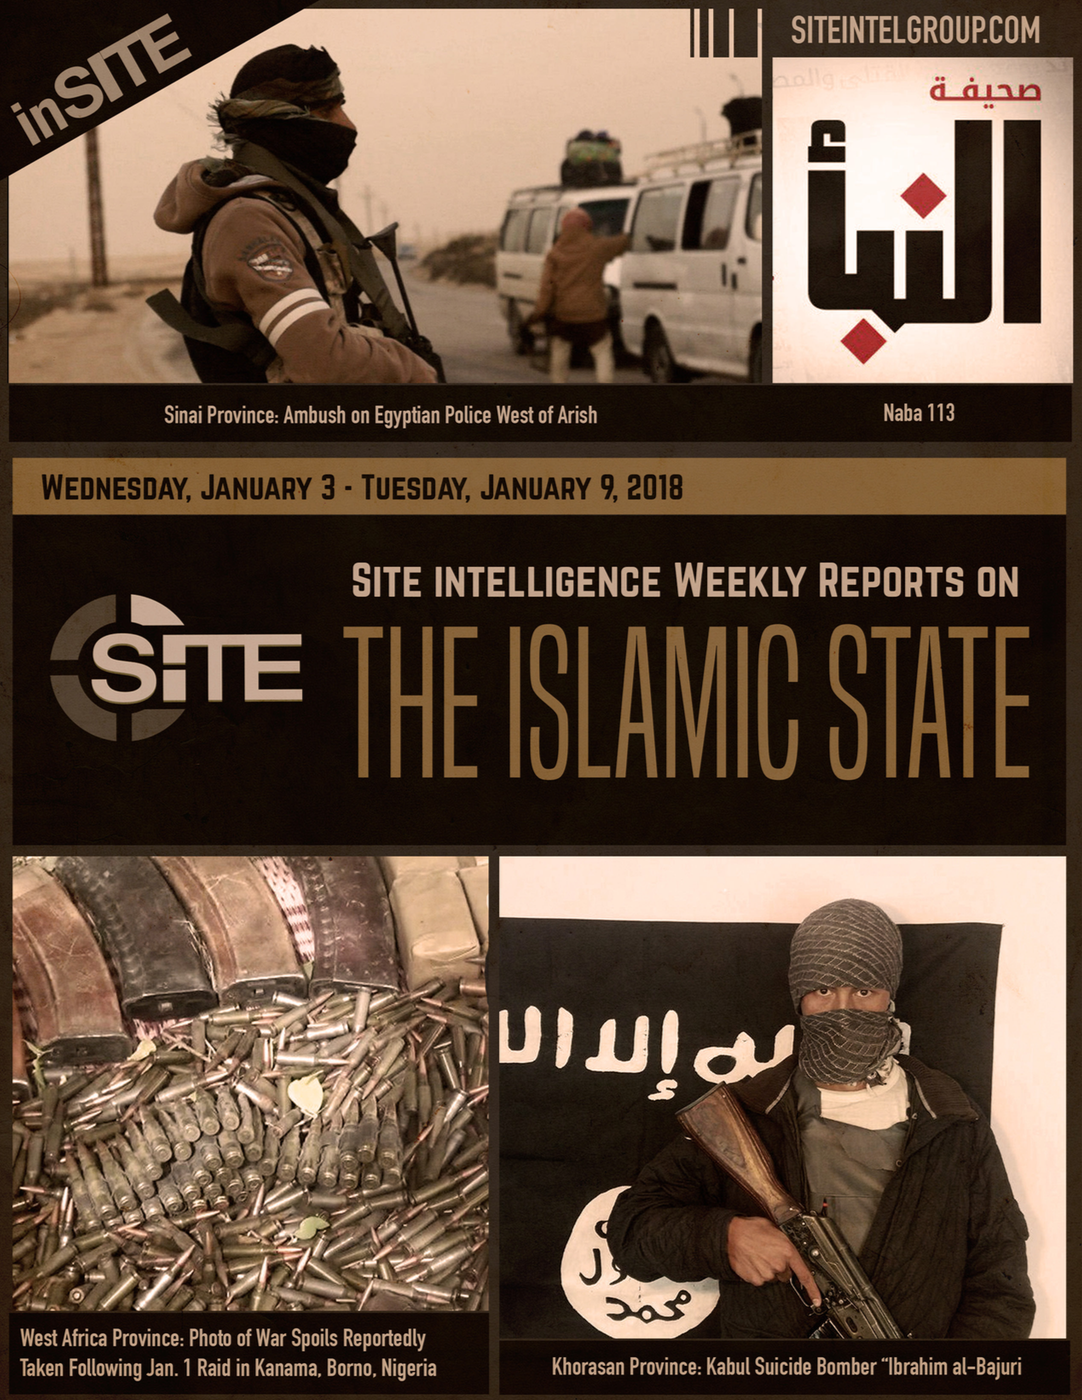 Weekly inSITE on the Islamic State, January 3-9, 2018